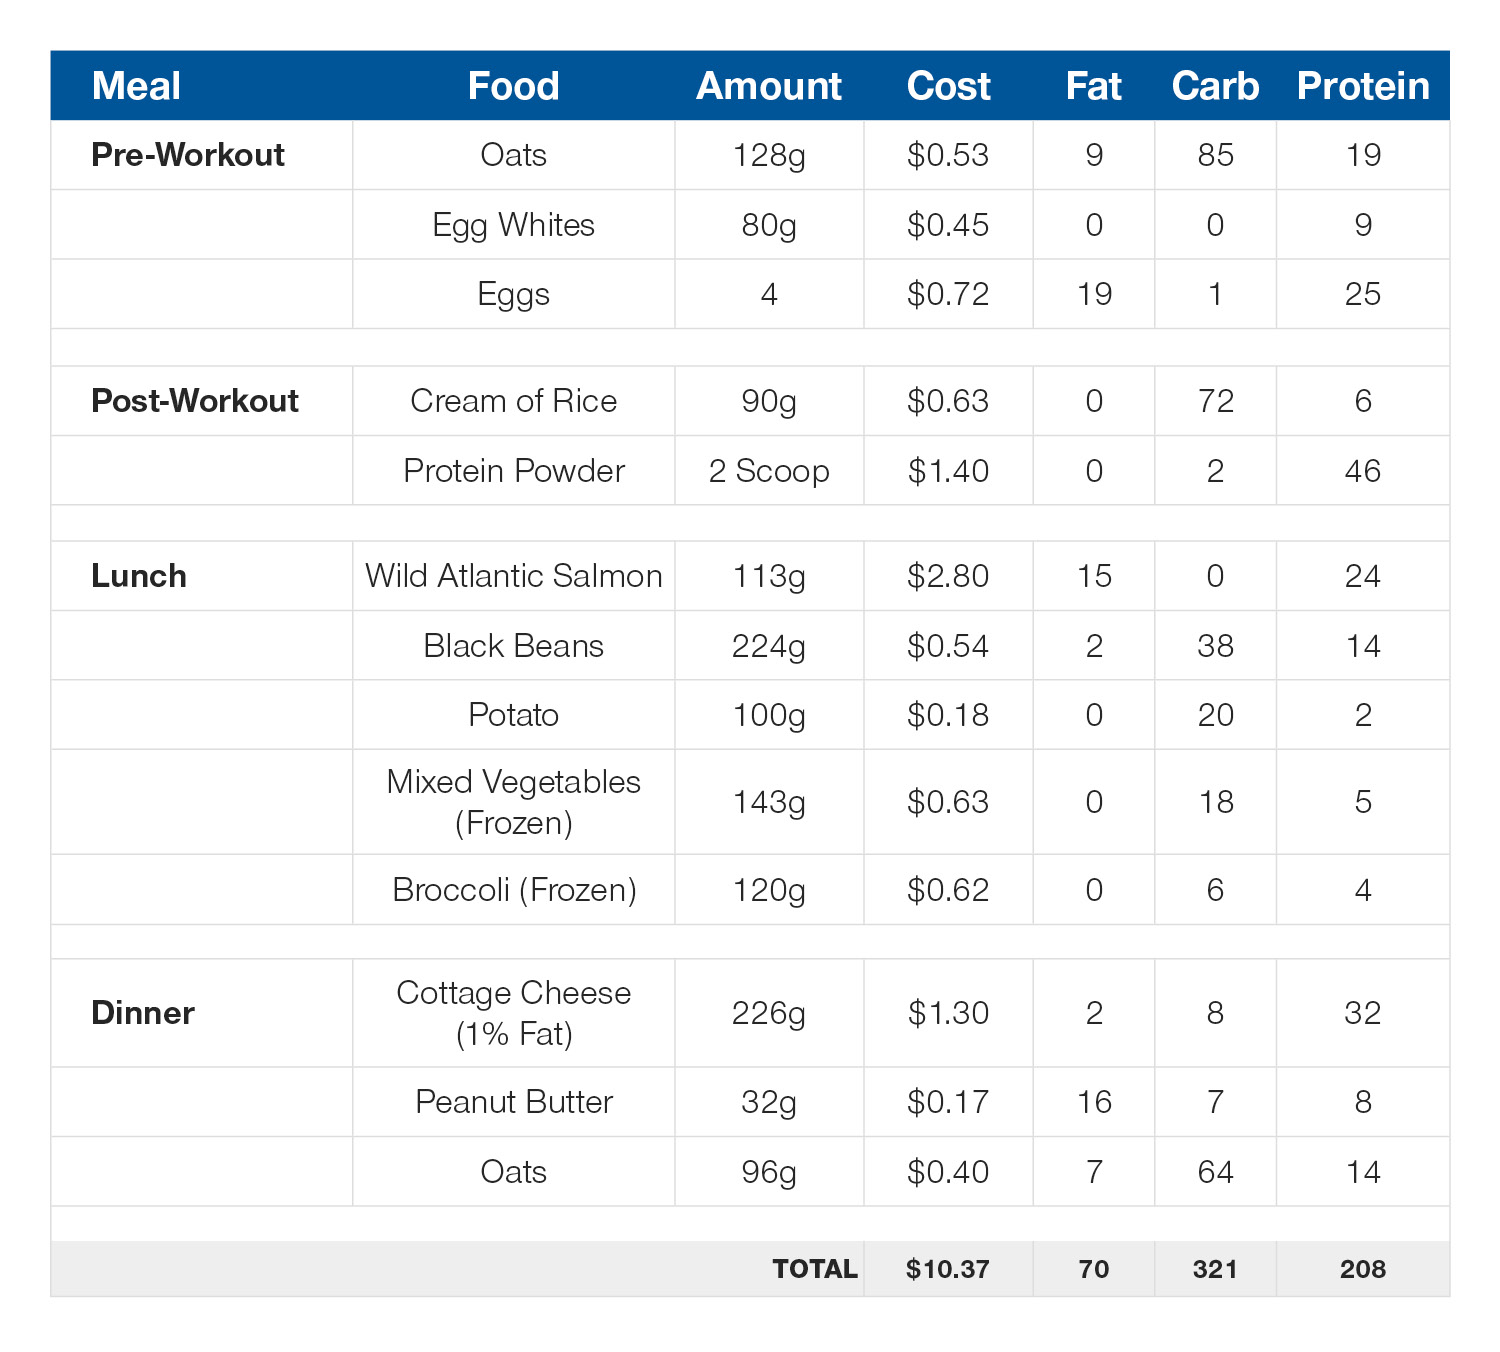 Daily meal plan: 210g protein, 70g fat, 320g carb